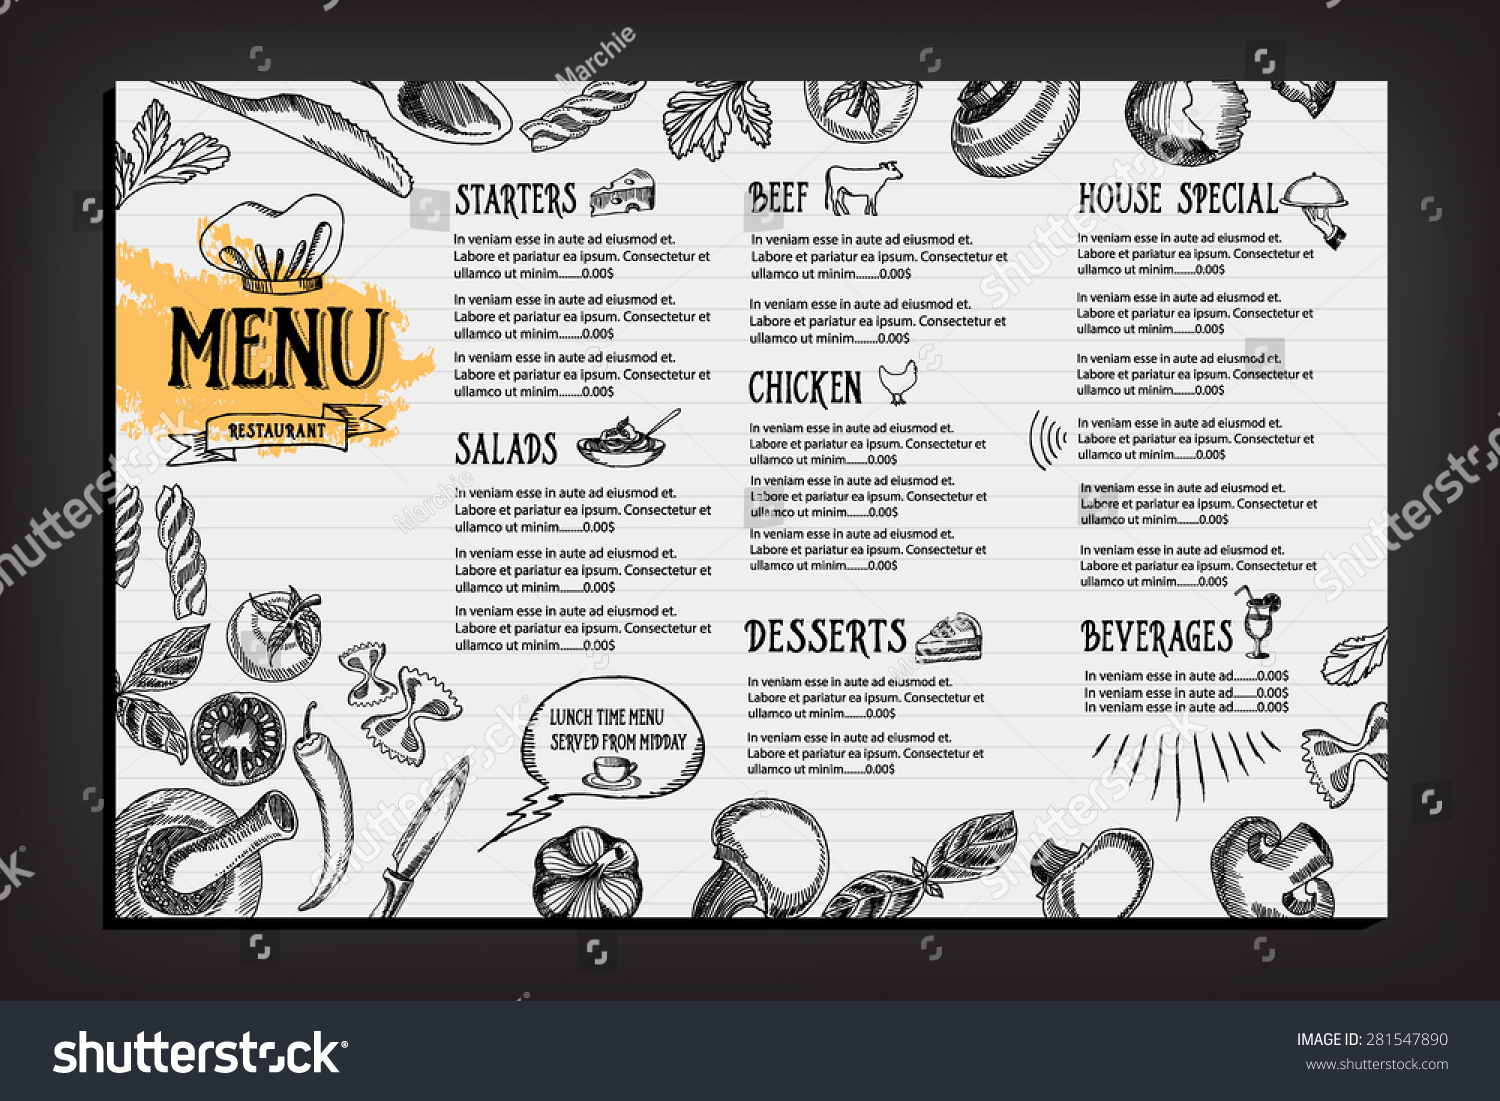 Cafe Menu Restaurant Brochure Food Design Stock Vector